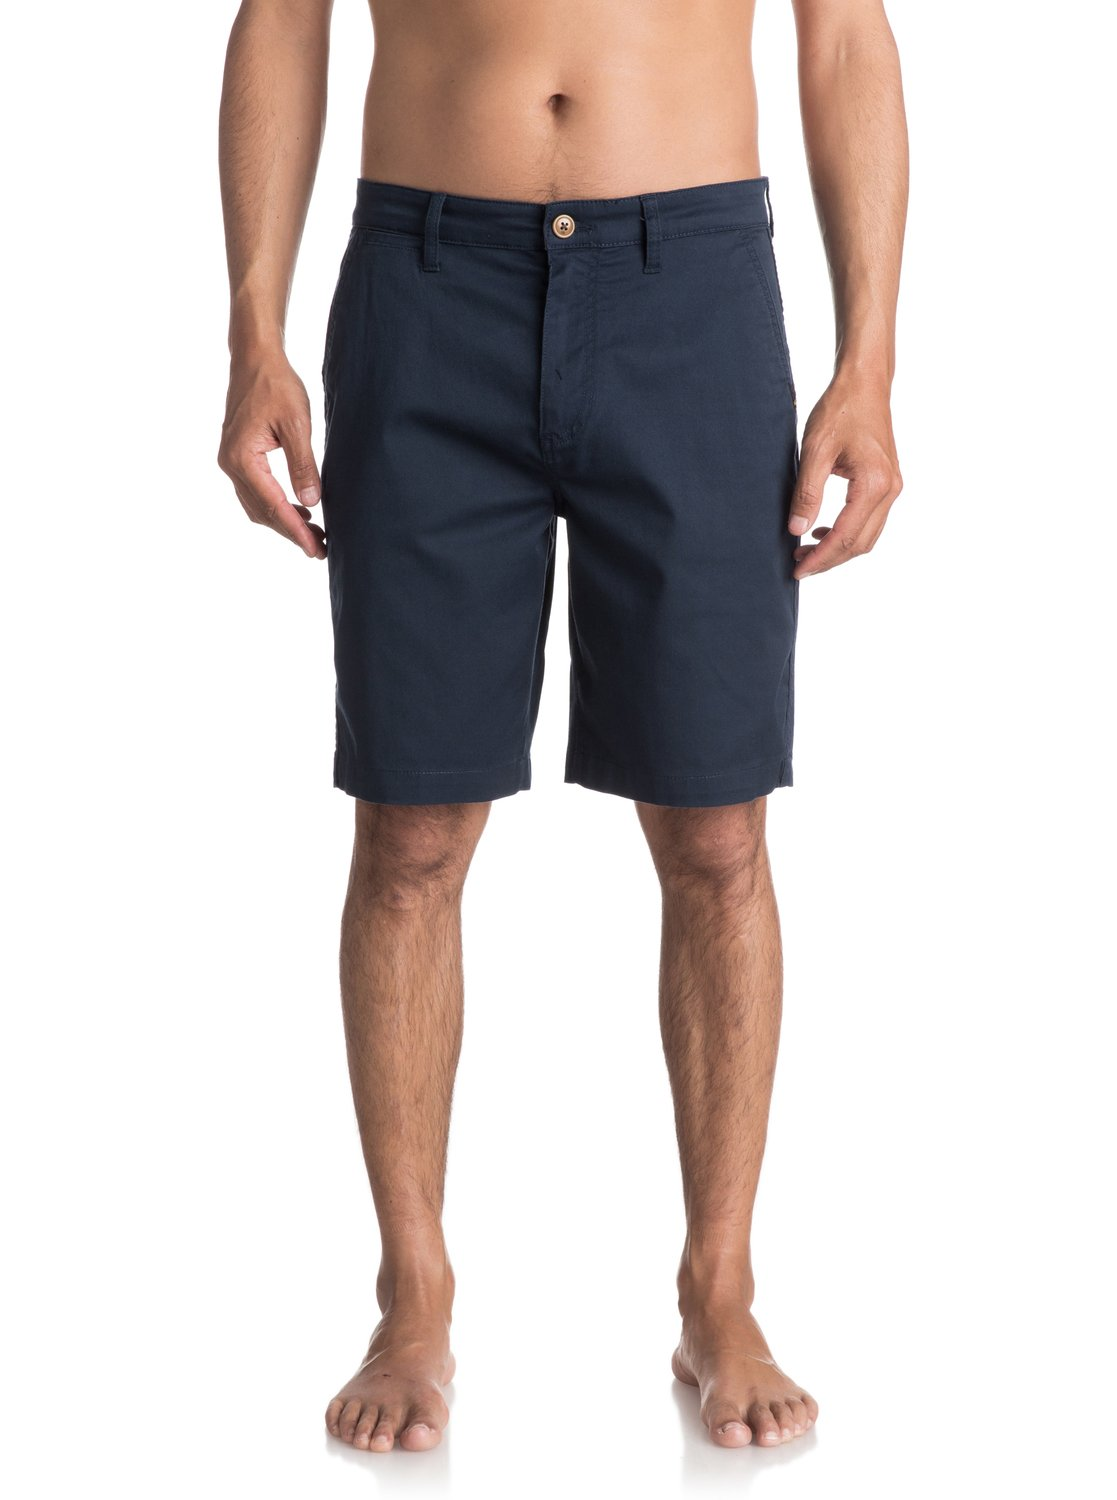 Discover the latest range of men's chino shorts at ASOS. Choose from various styles, colors and fabrics. Shop for men's chino shorts today from ASOS.